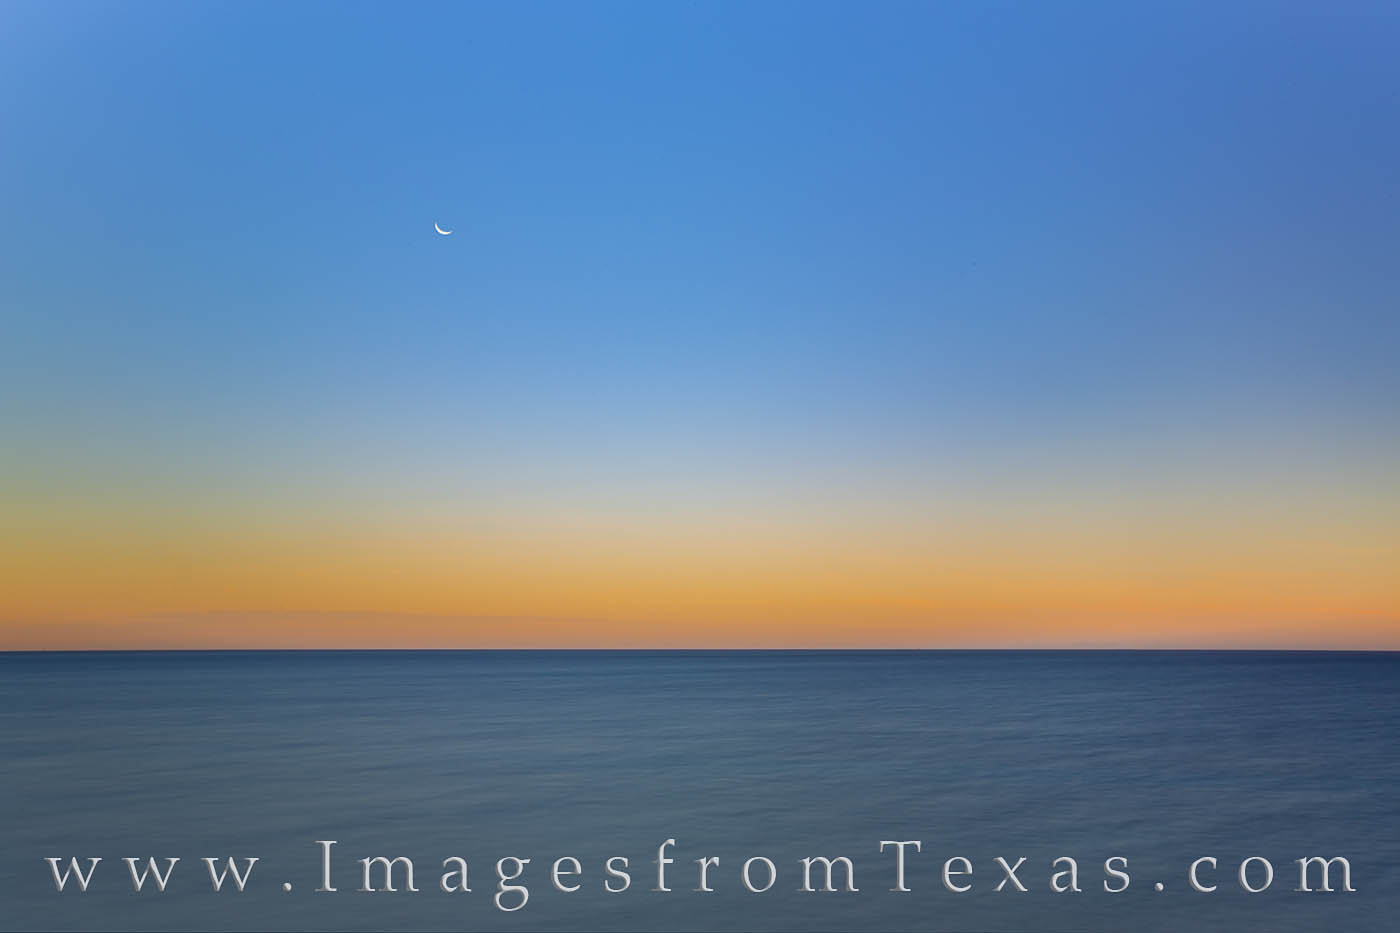 gulf of mexico, ocean, crescent moon, moonrise, gulf prints, solitude, photo